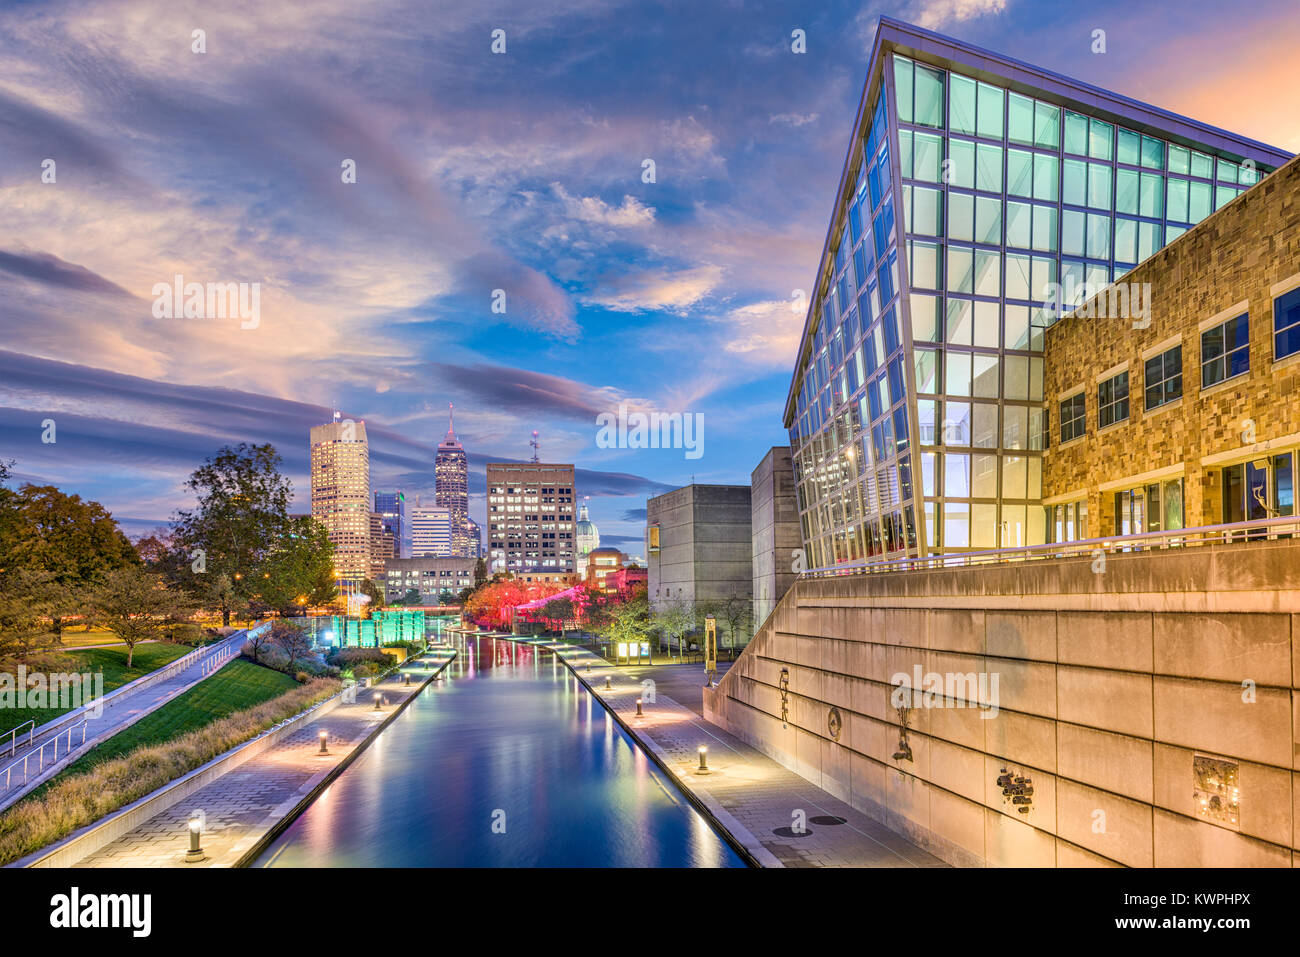 Indianapolis, Indiana, USA skyline and canal. - Stock Image